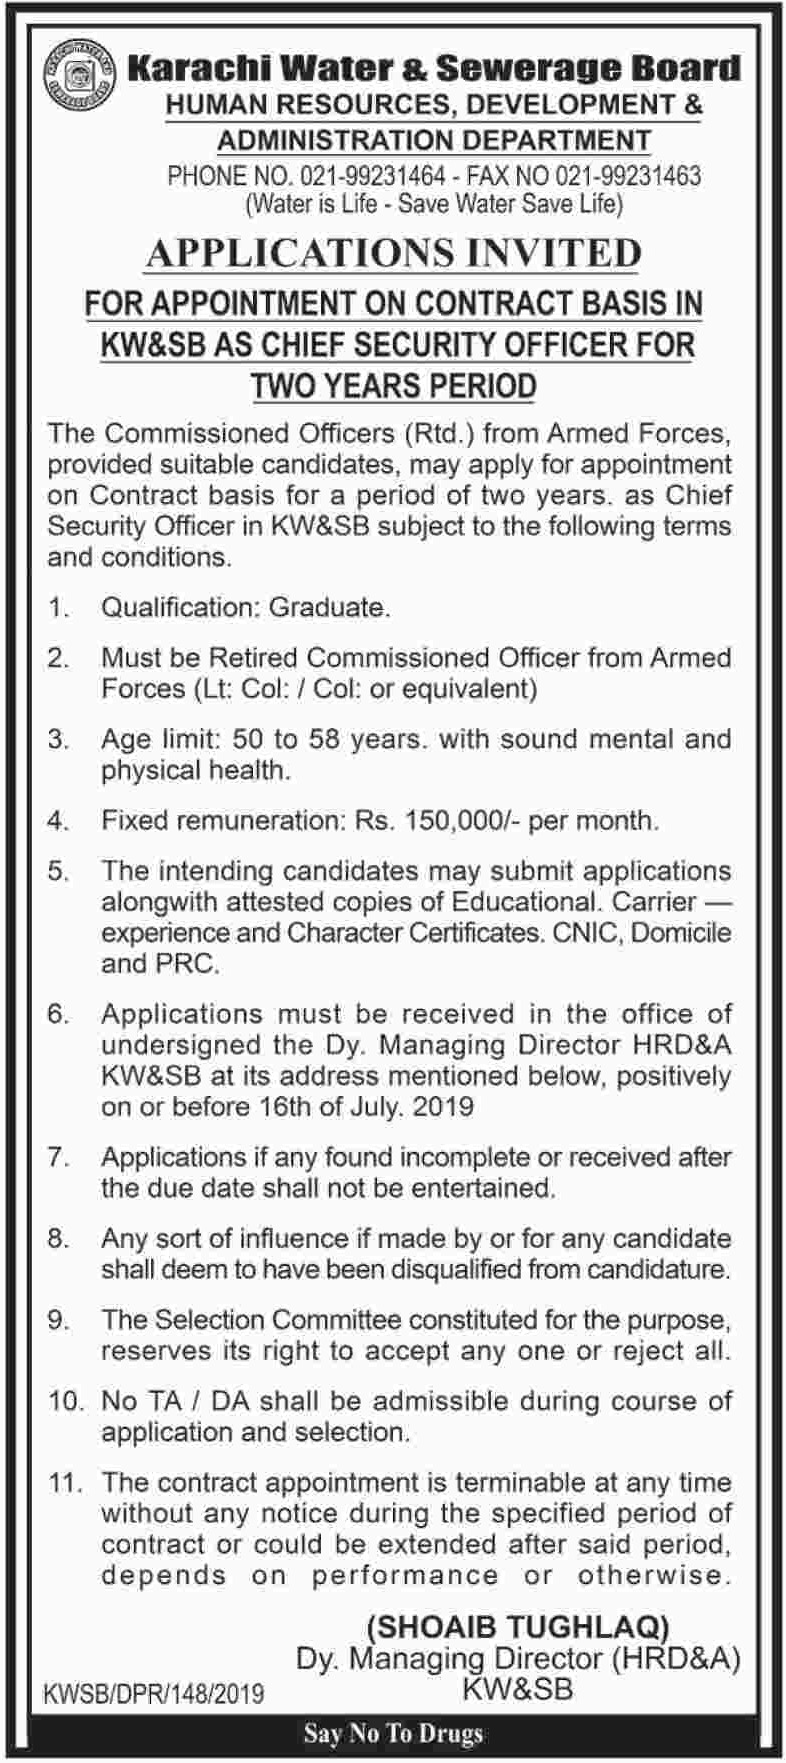 Karachi Water & Sewerage Board KW&SB Jobs 2019 Sindh